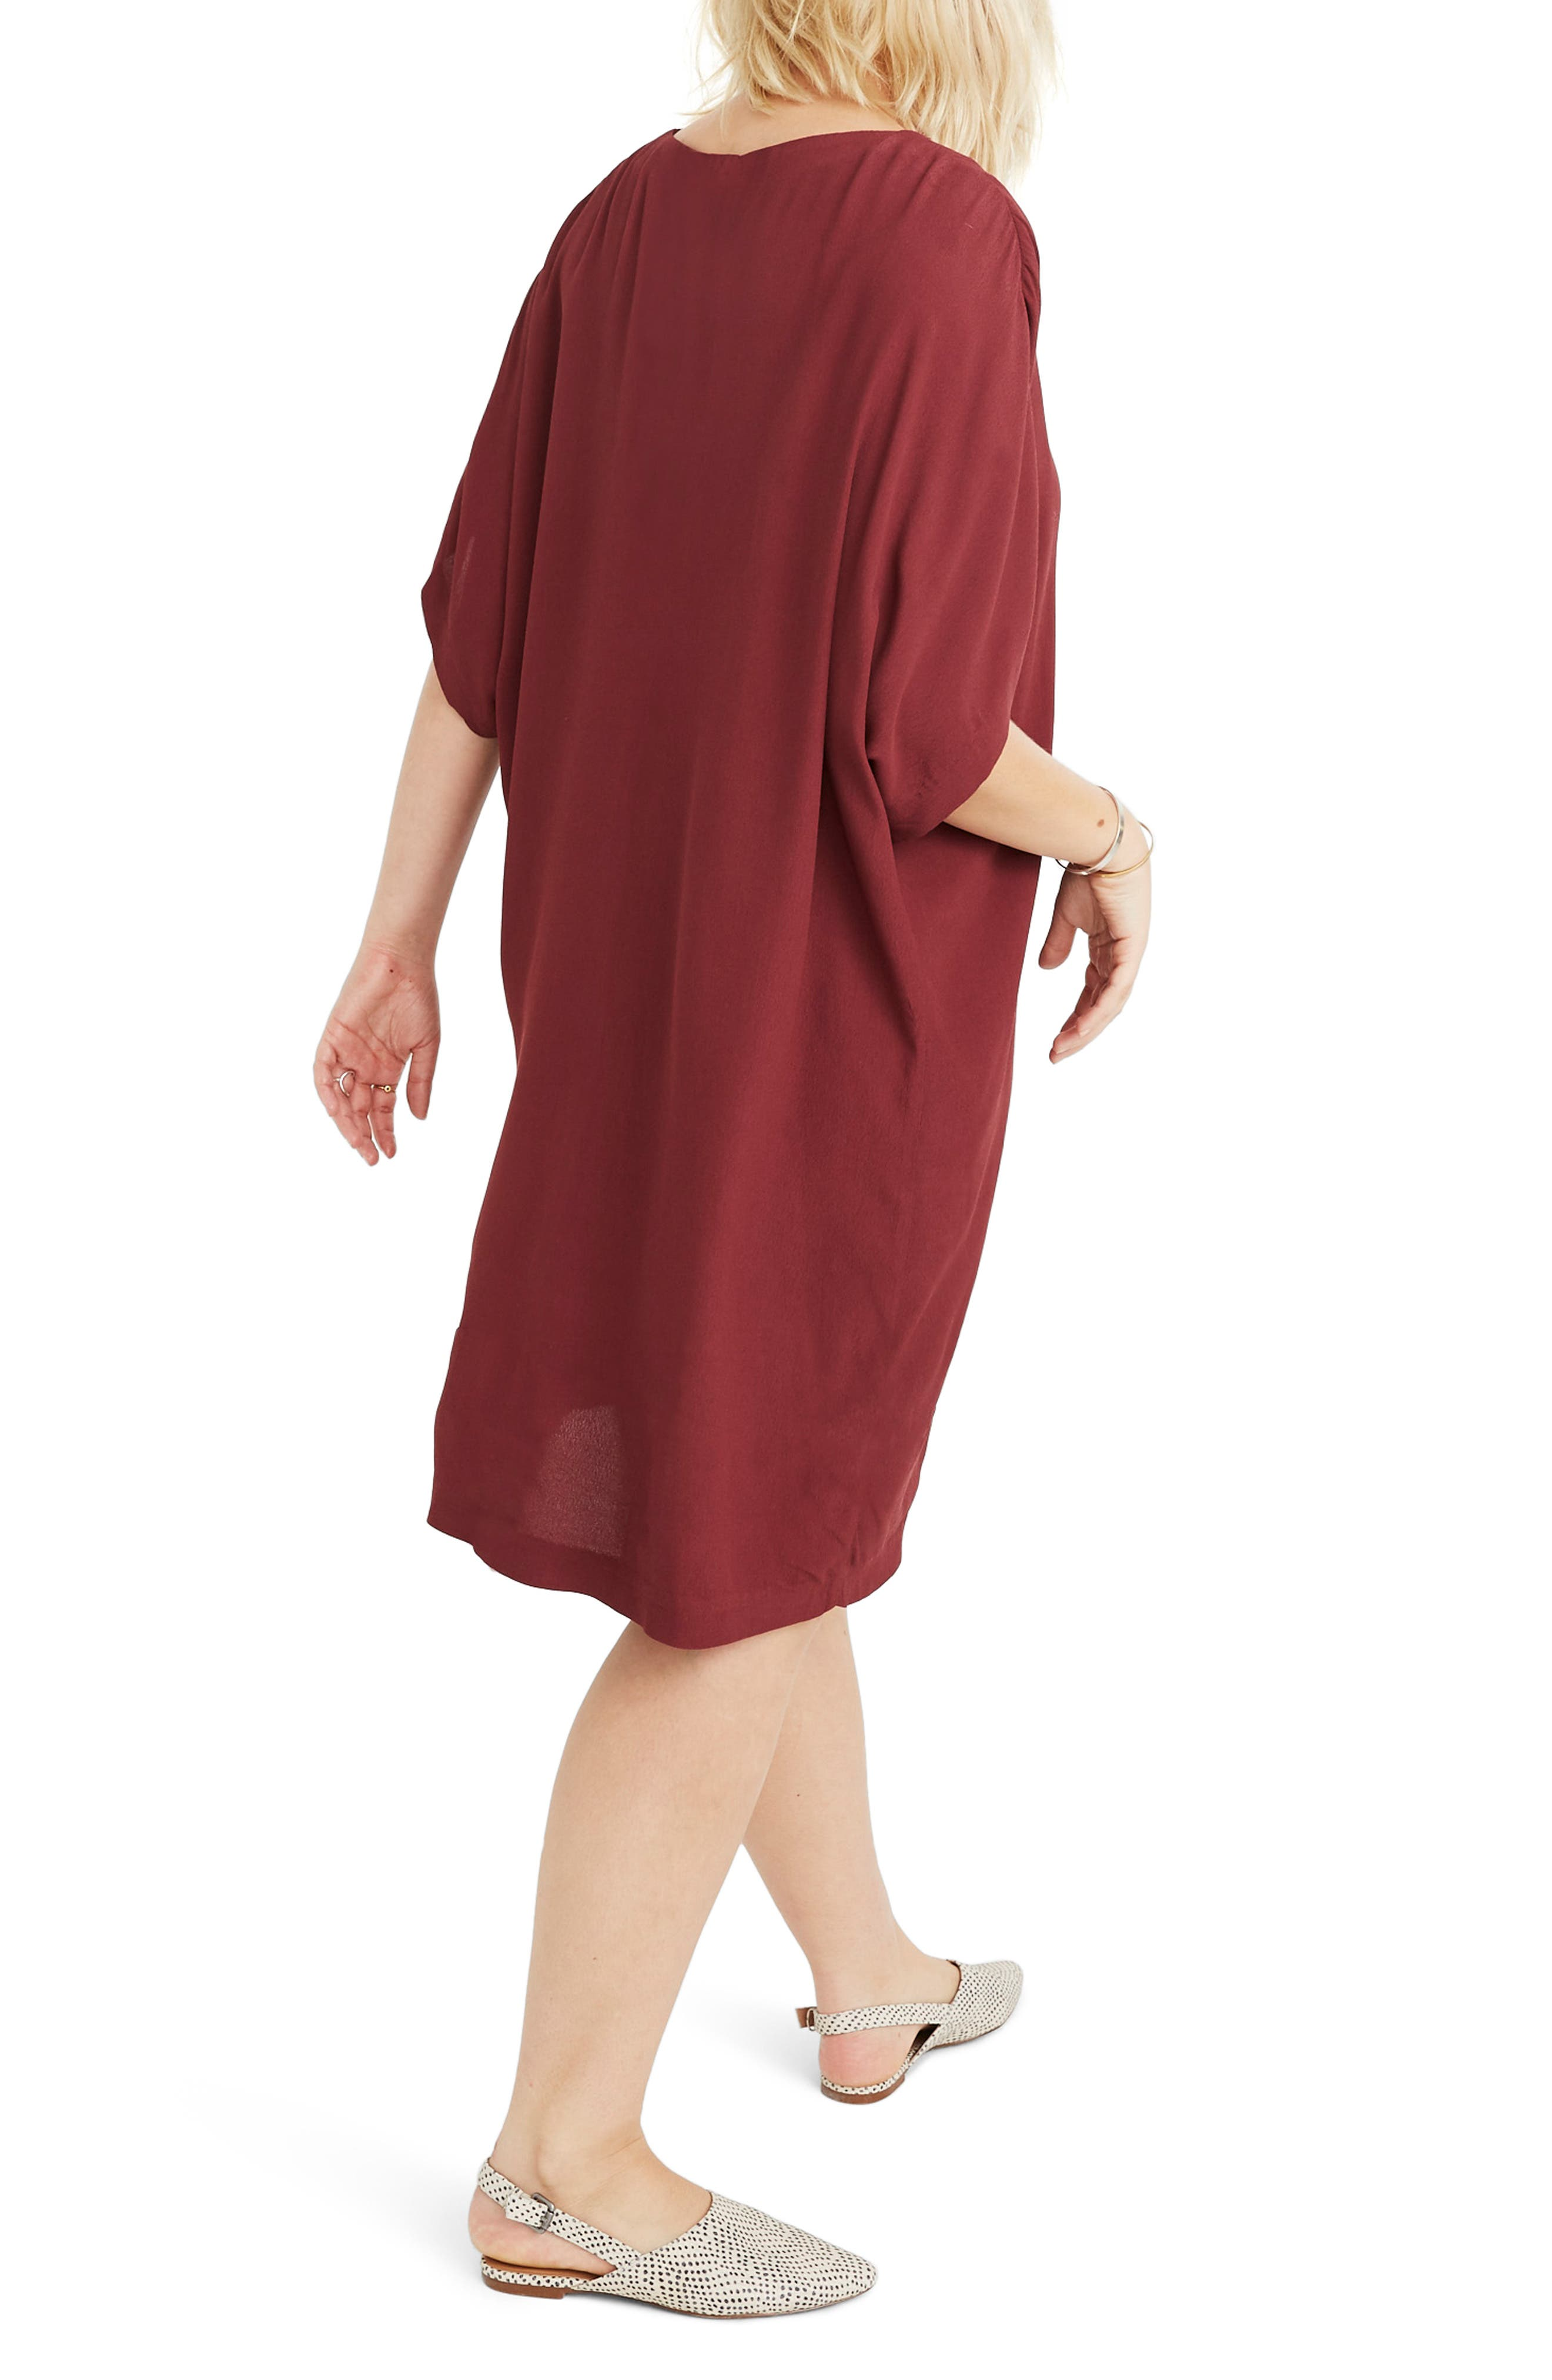 MADEWELL, Button Front Easy Dress, Alternate thumbnail 8, color, RICH BURGUNDY